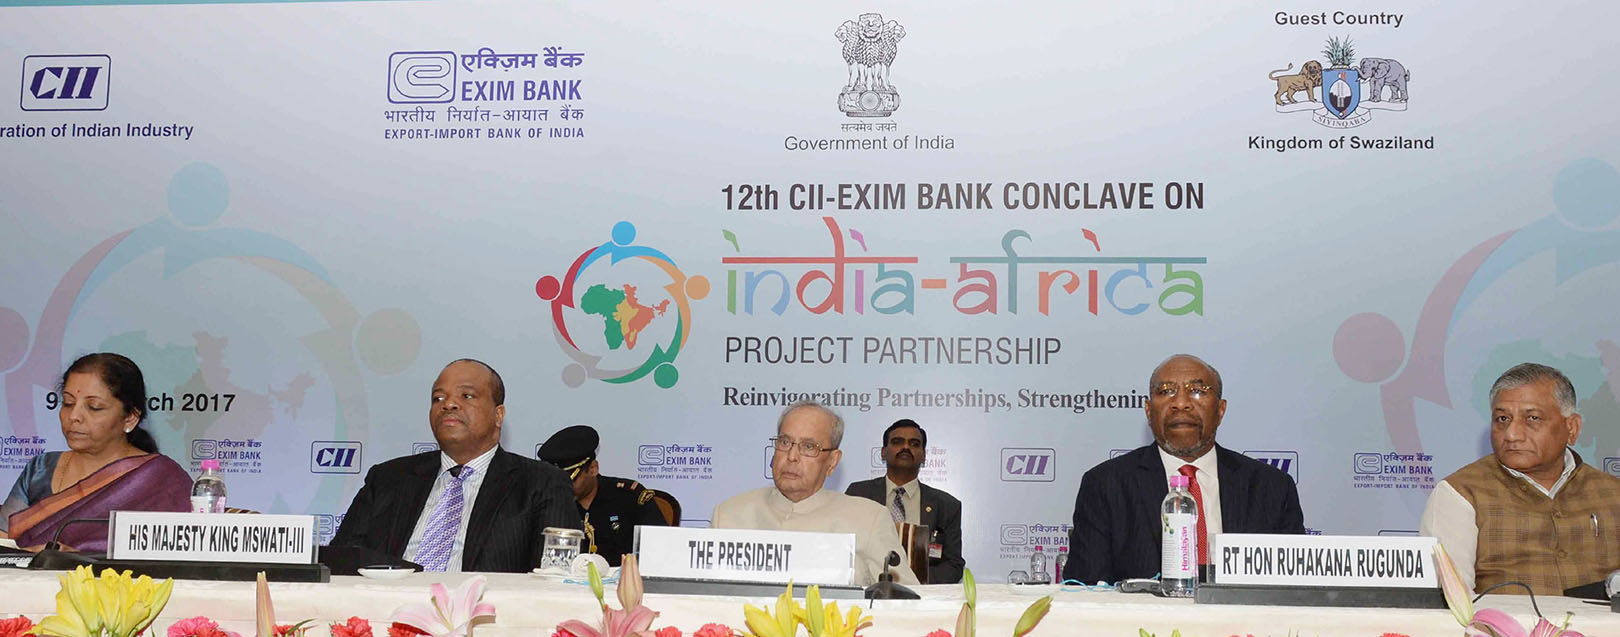 Combined GDP of India, Africa would be $35 tn by 2050: President